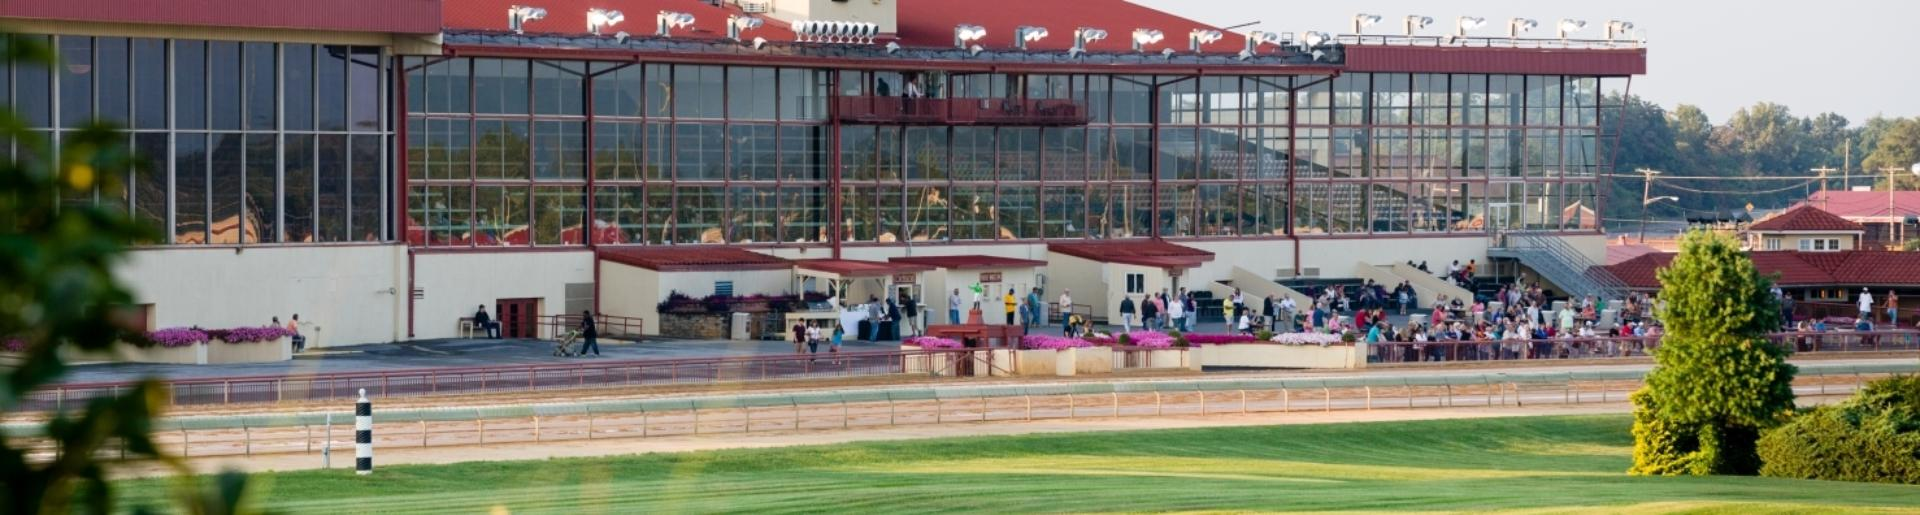 horse racing track at Hollywood Casino at Charles Town Races West Virginia